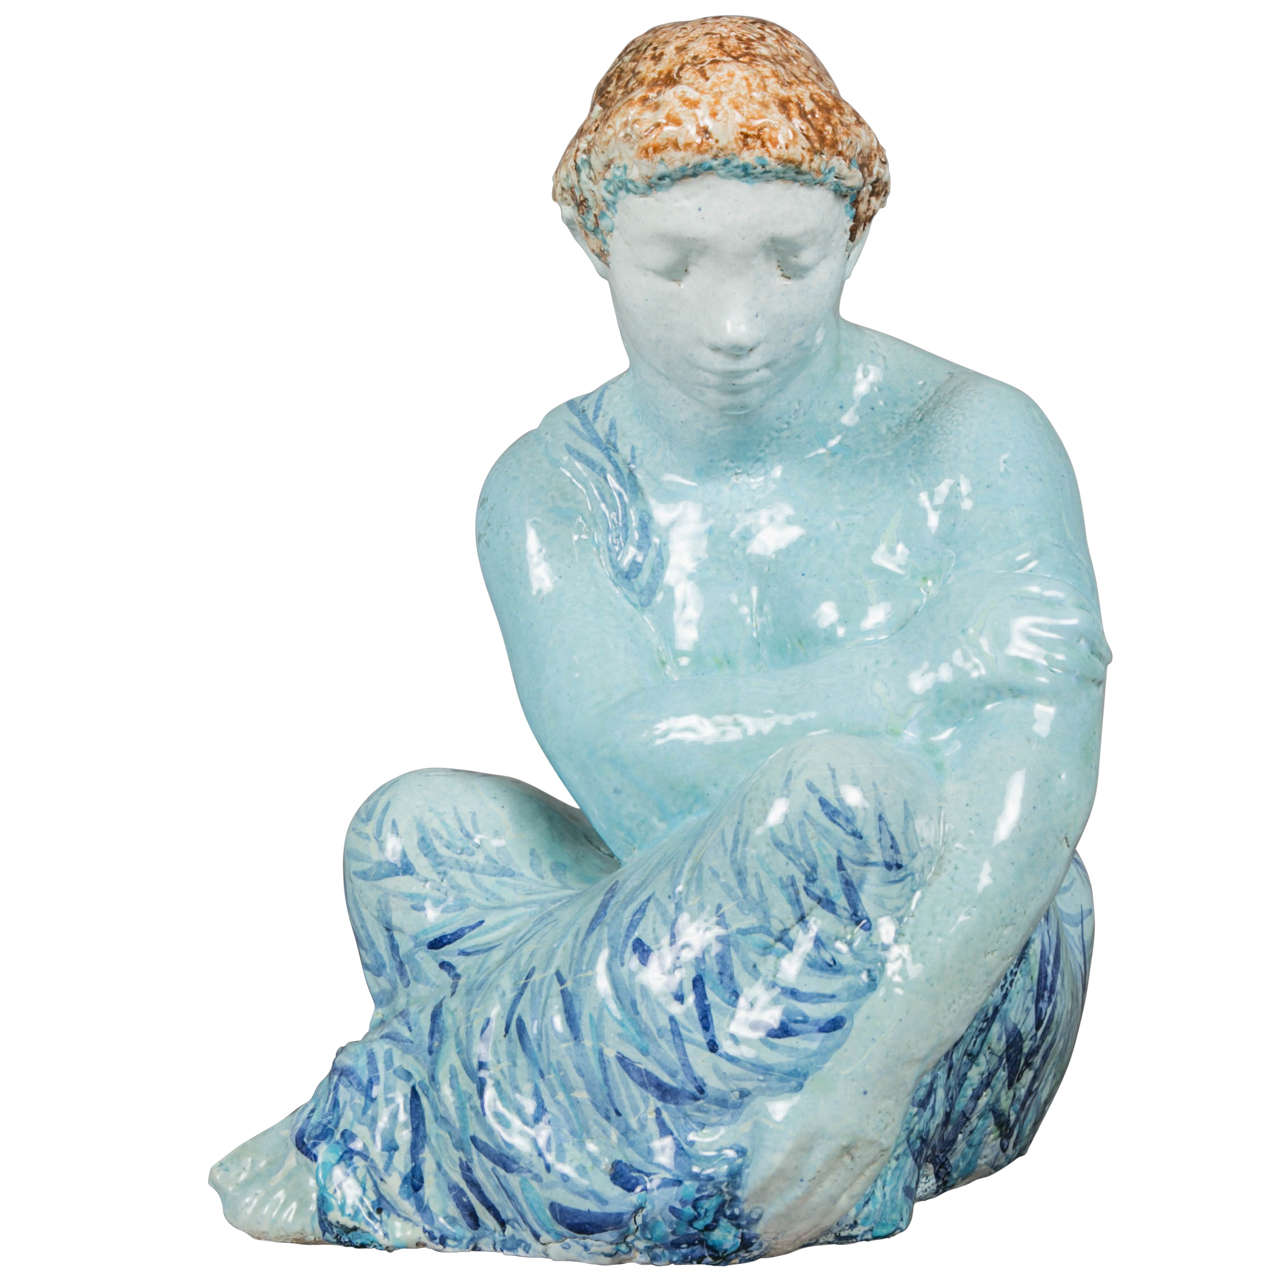 Blue Enameled Ceramic of a Woman by Odette Lepeltier, 1950s For Sale